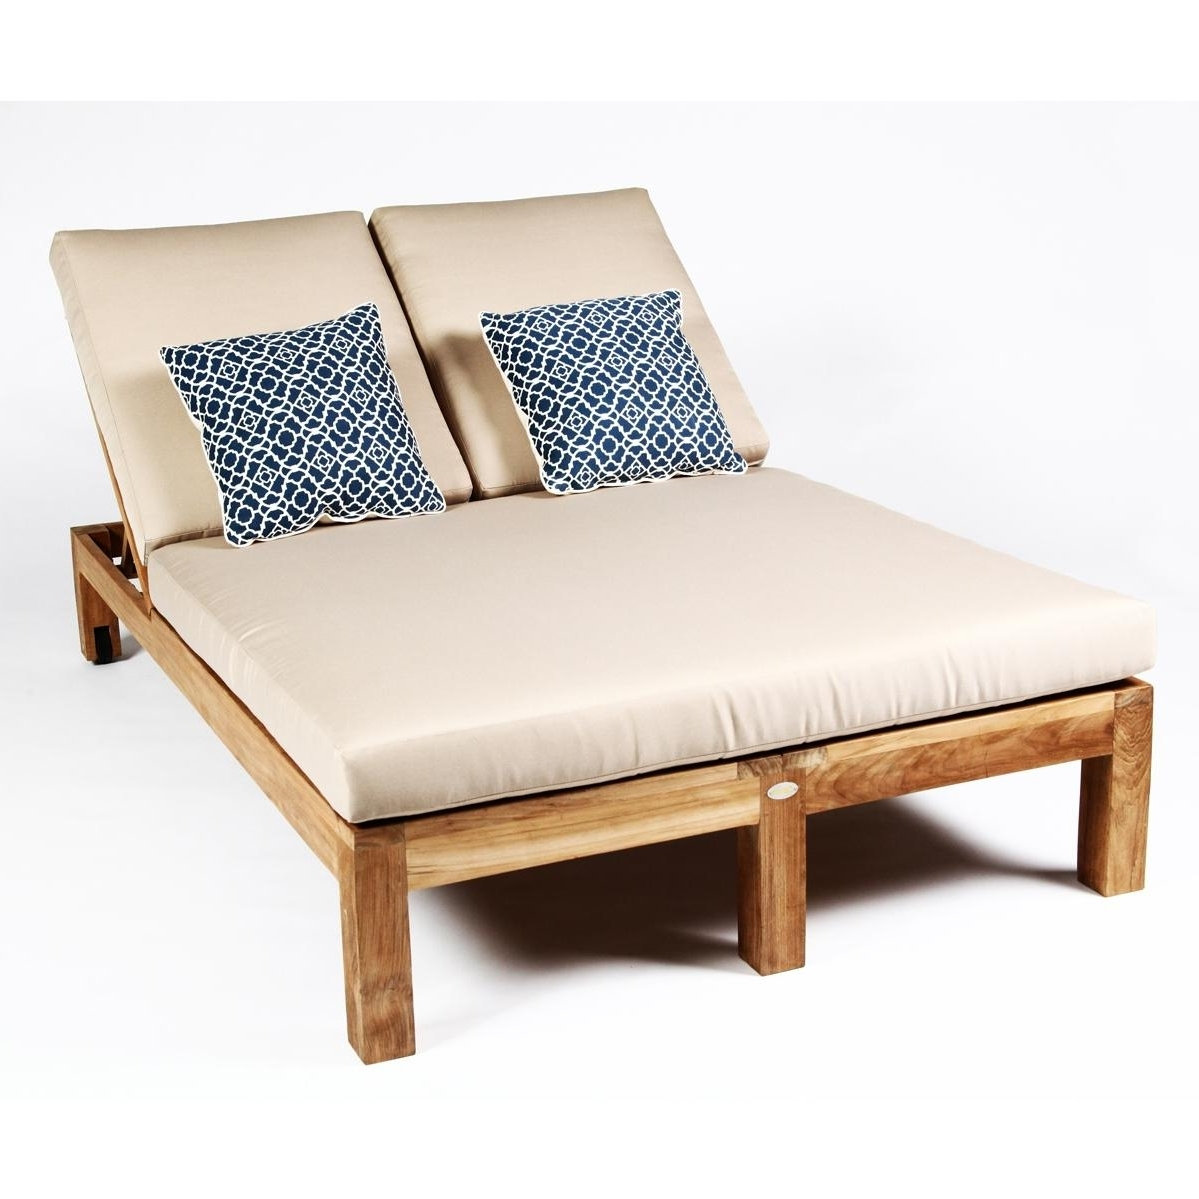 Fashionable Double Chaise Lounge Chairs Intended For Teak Wood Double Chaise Lounge Chair • Lounge Chairs Ideas (View 7 of 15)